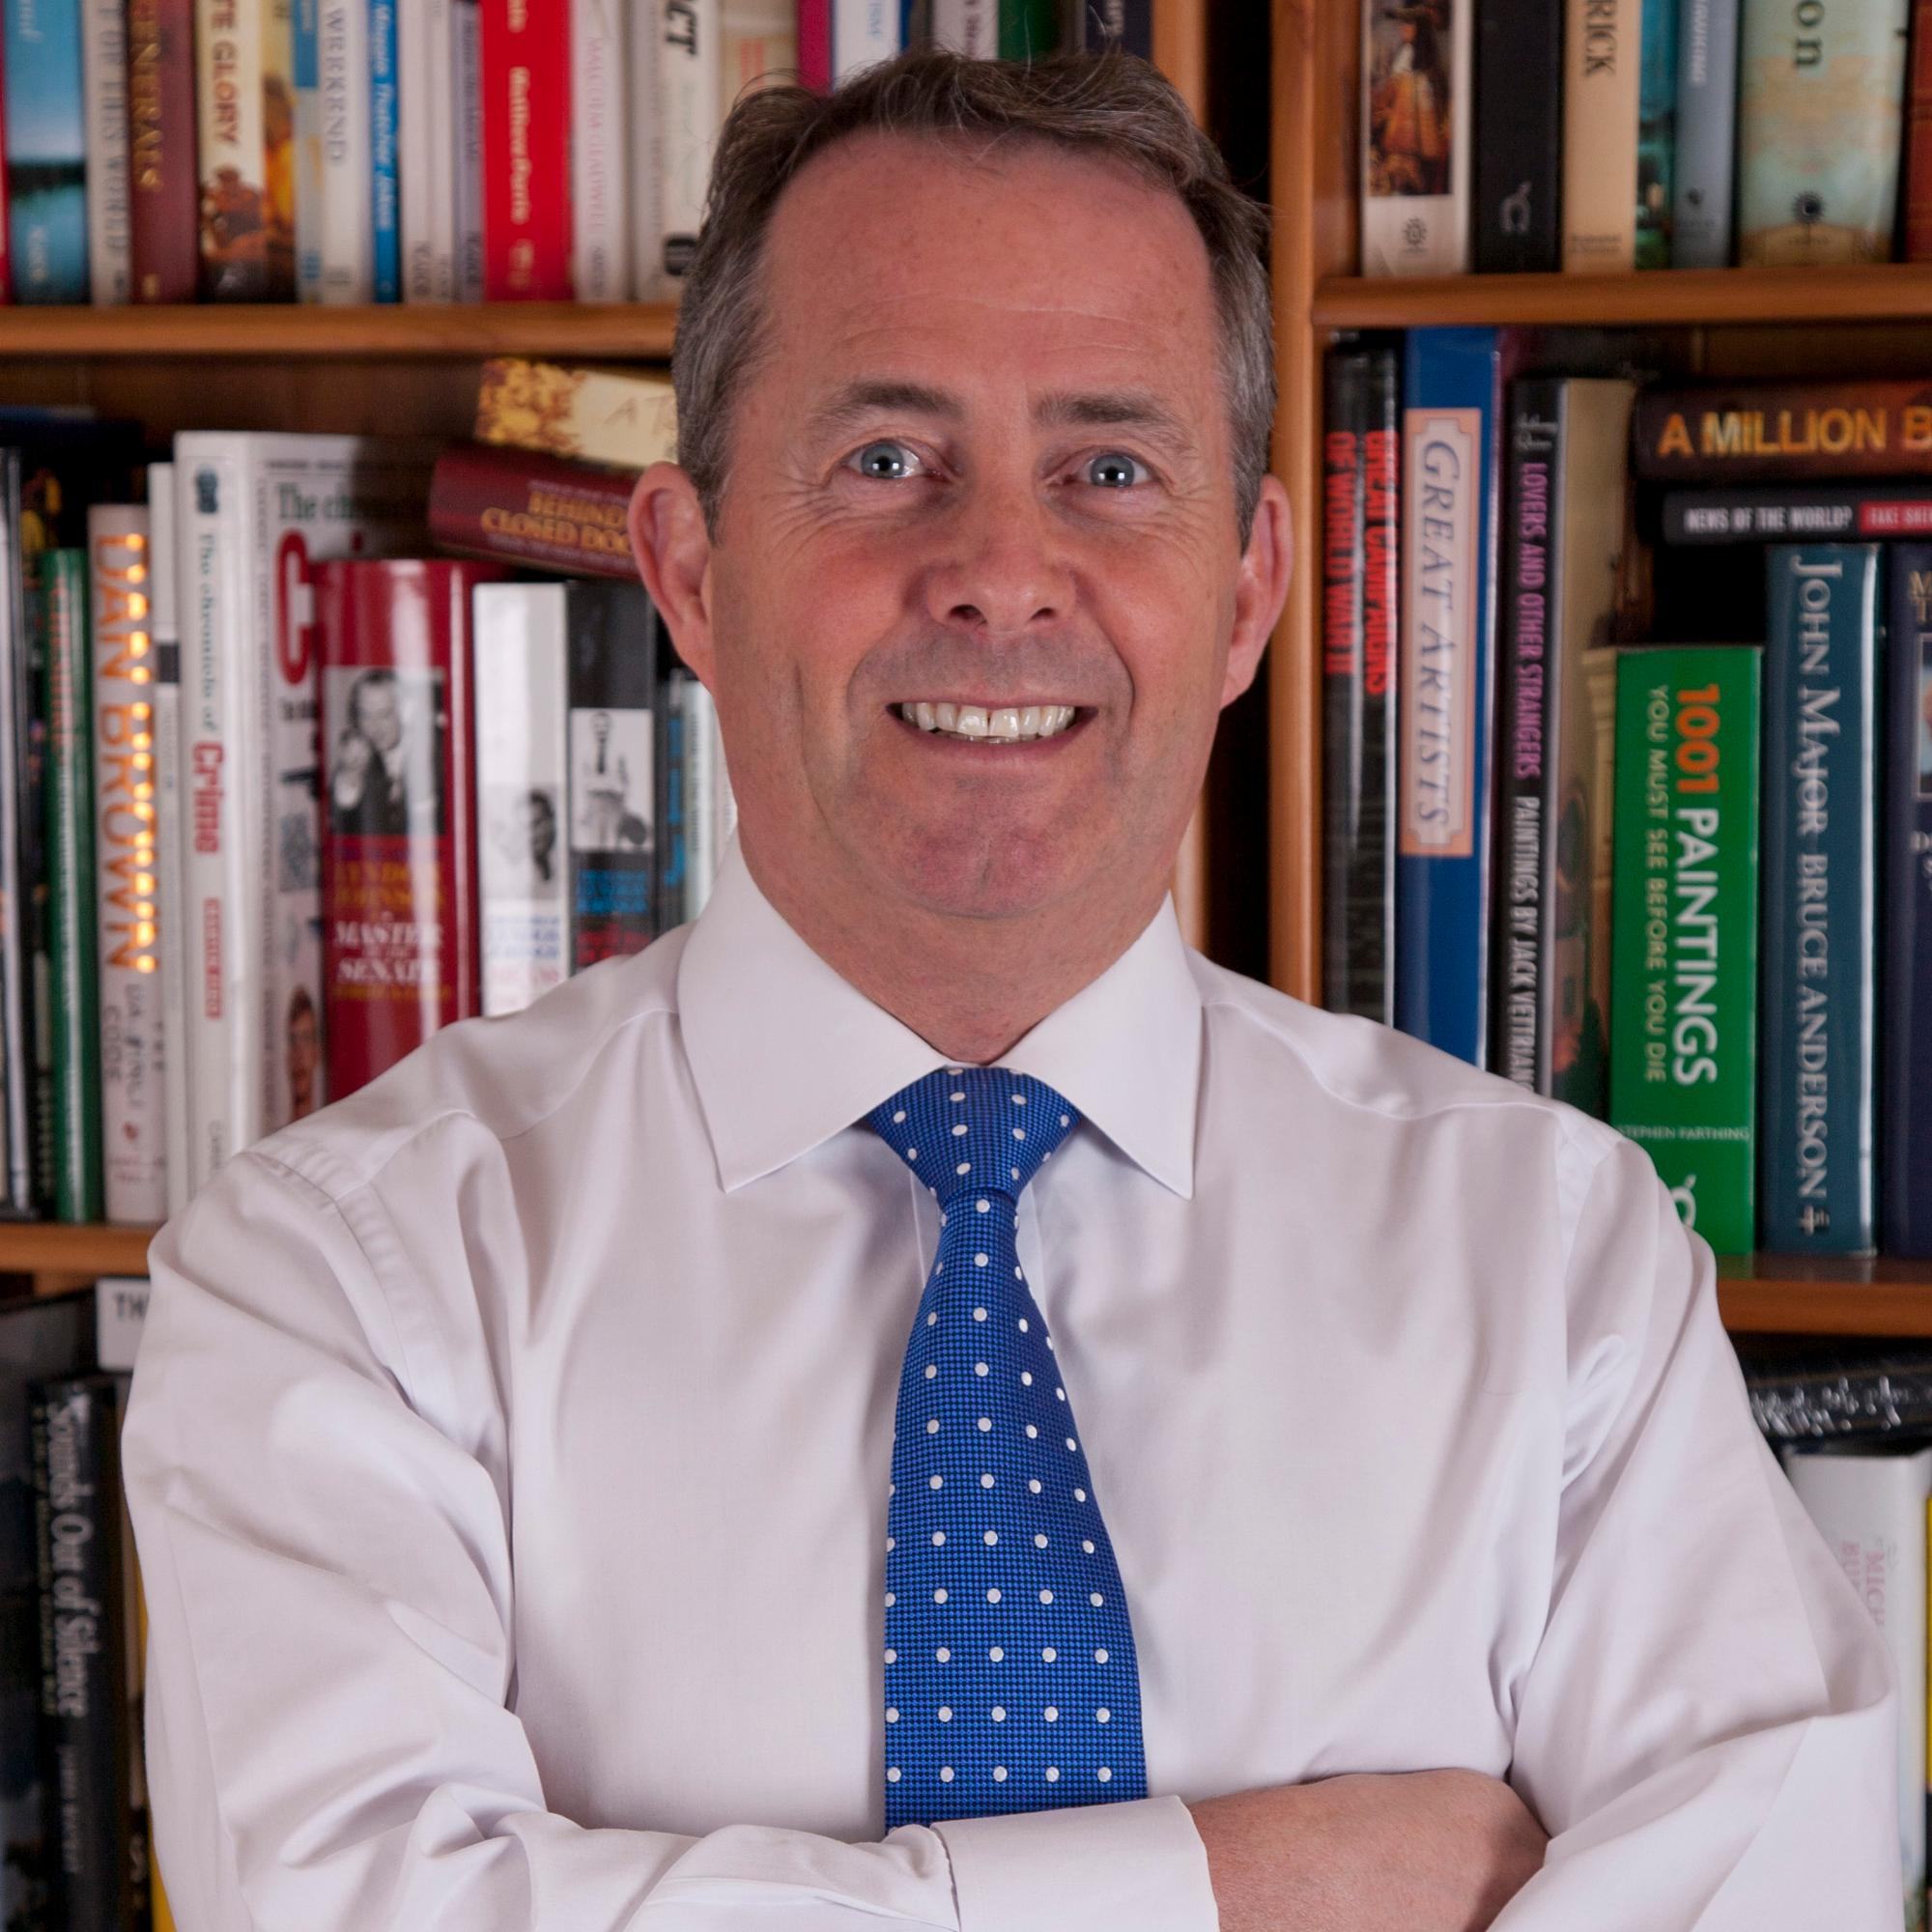 Rt Hon Dr Liam Fox, Secretary of State for International Trade, President of the Board of Trade and Conservative MP for North Somerset